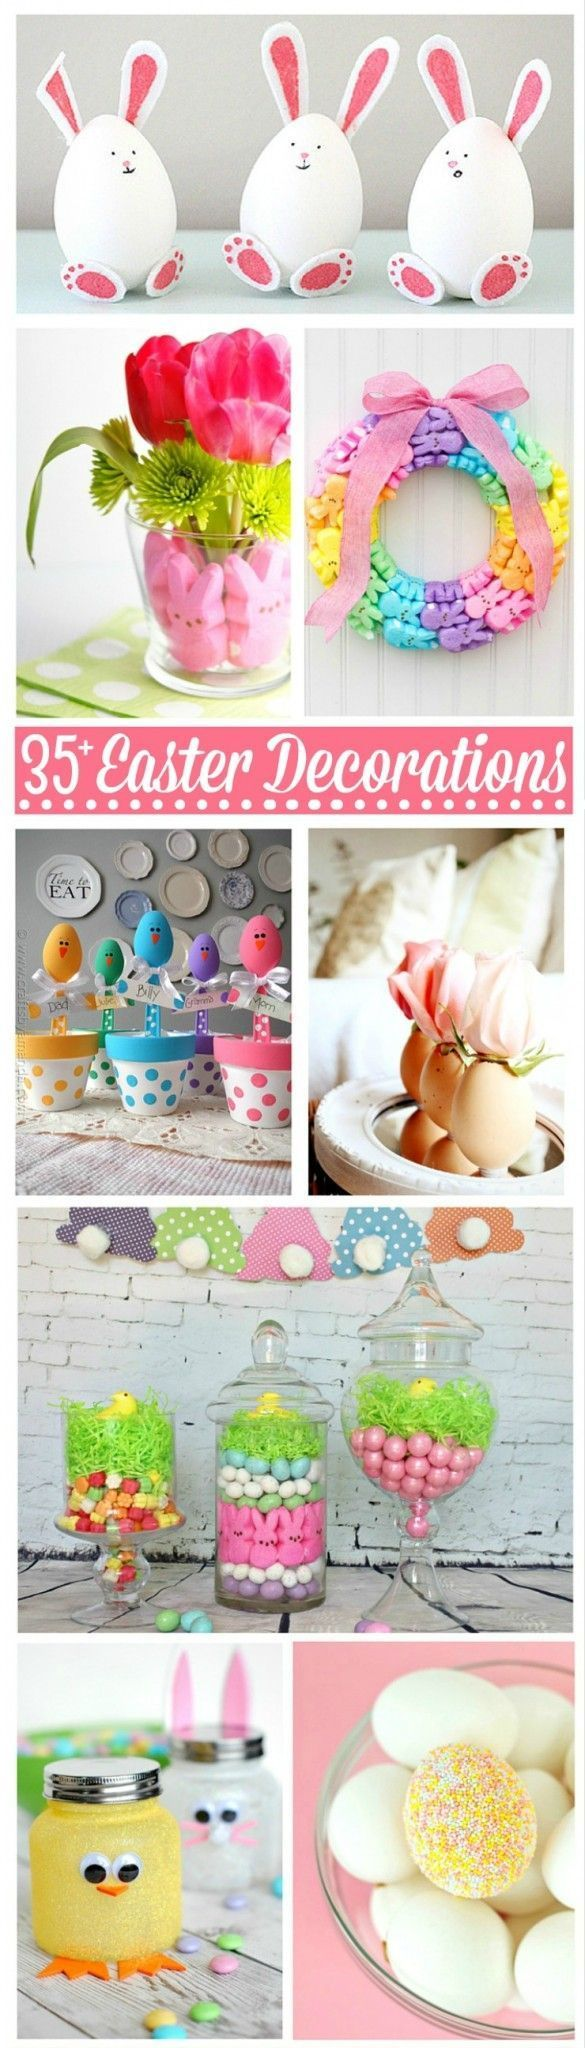 35 Gorgeous Easter Decorations